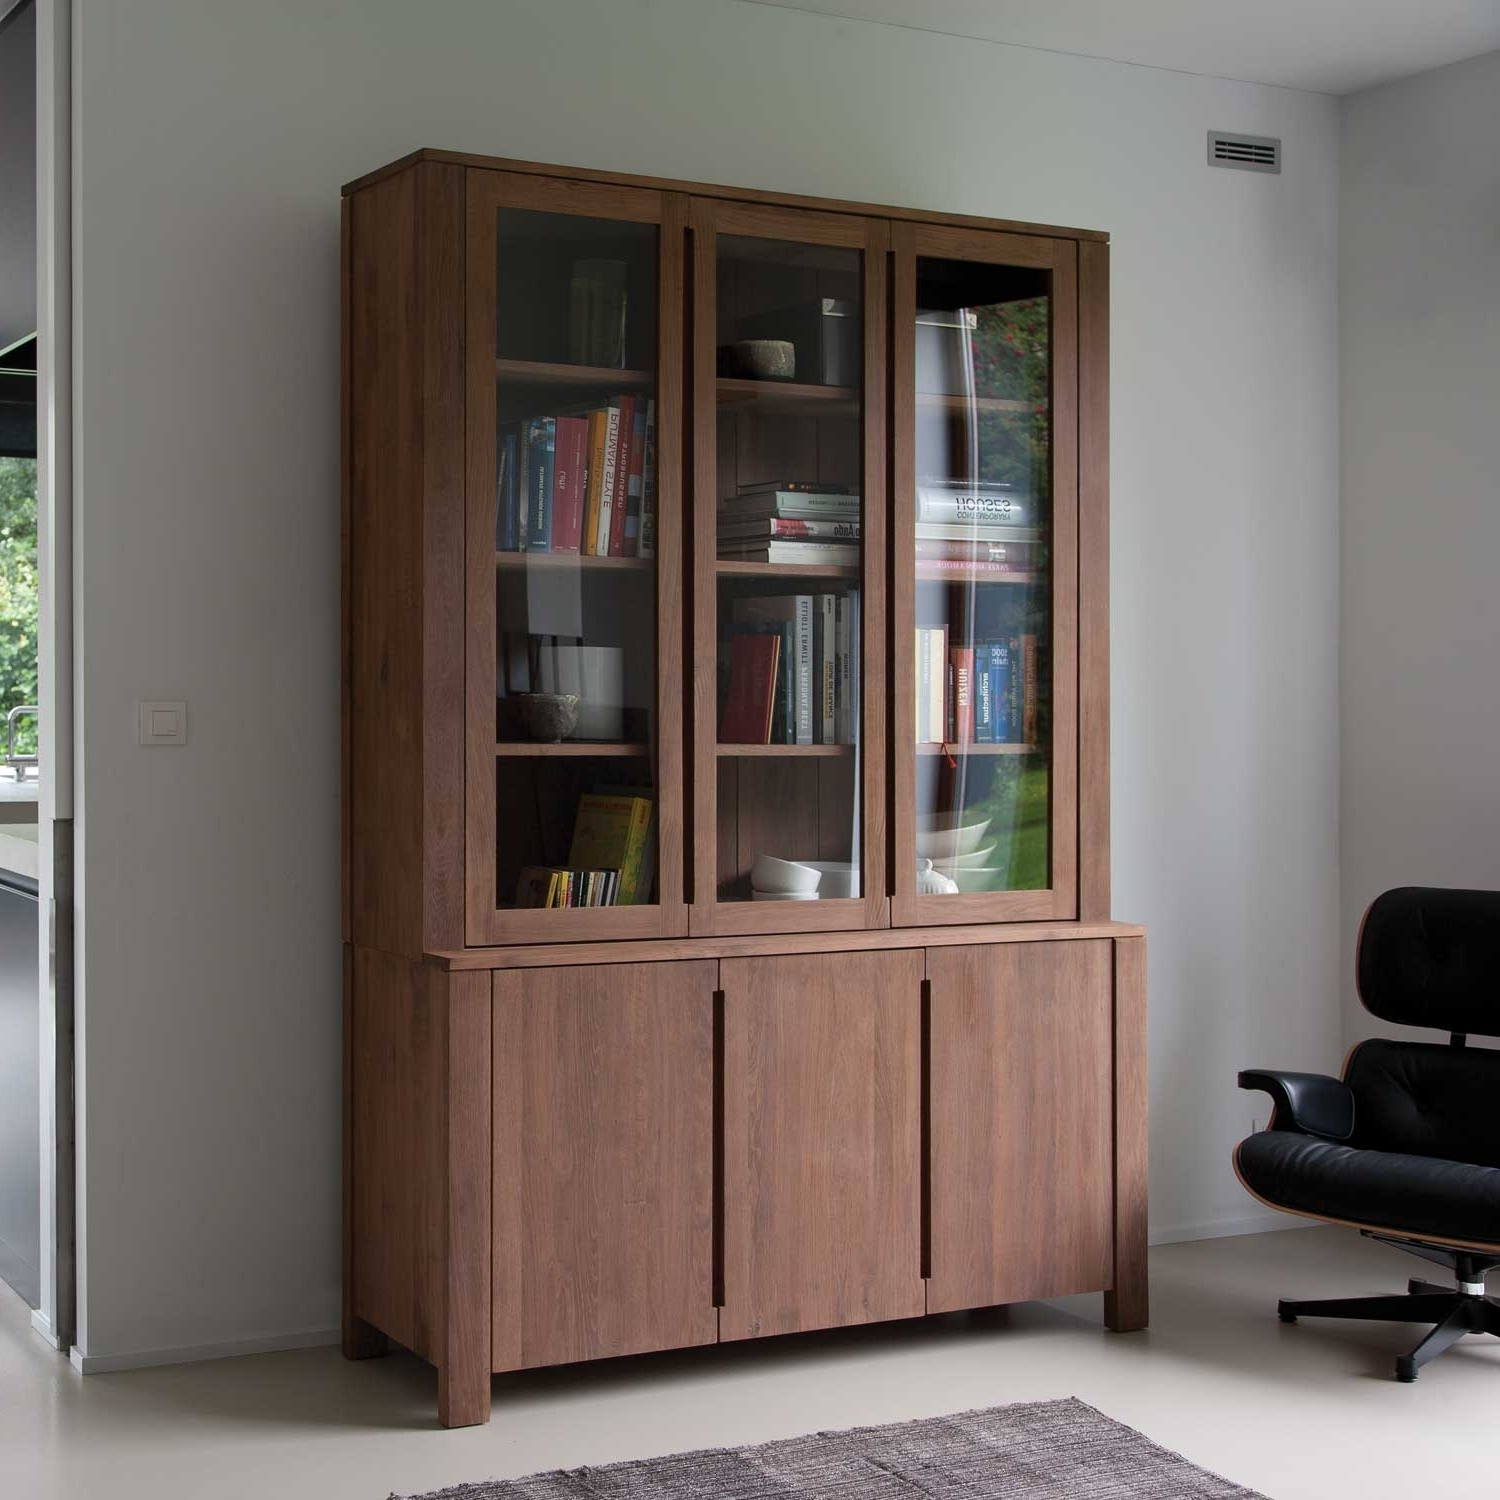 Fashionable Furniture: Effortless Installation Bookcases With Glass Doors Within Bookcases With Glass Doors (View 11 of 15)